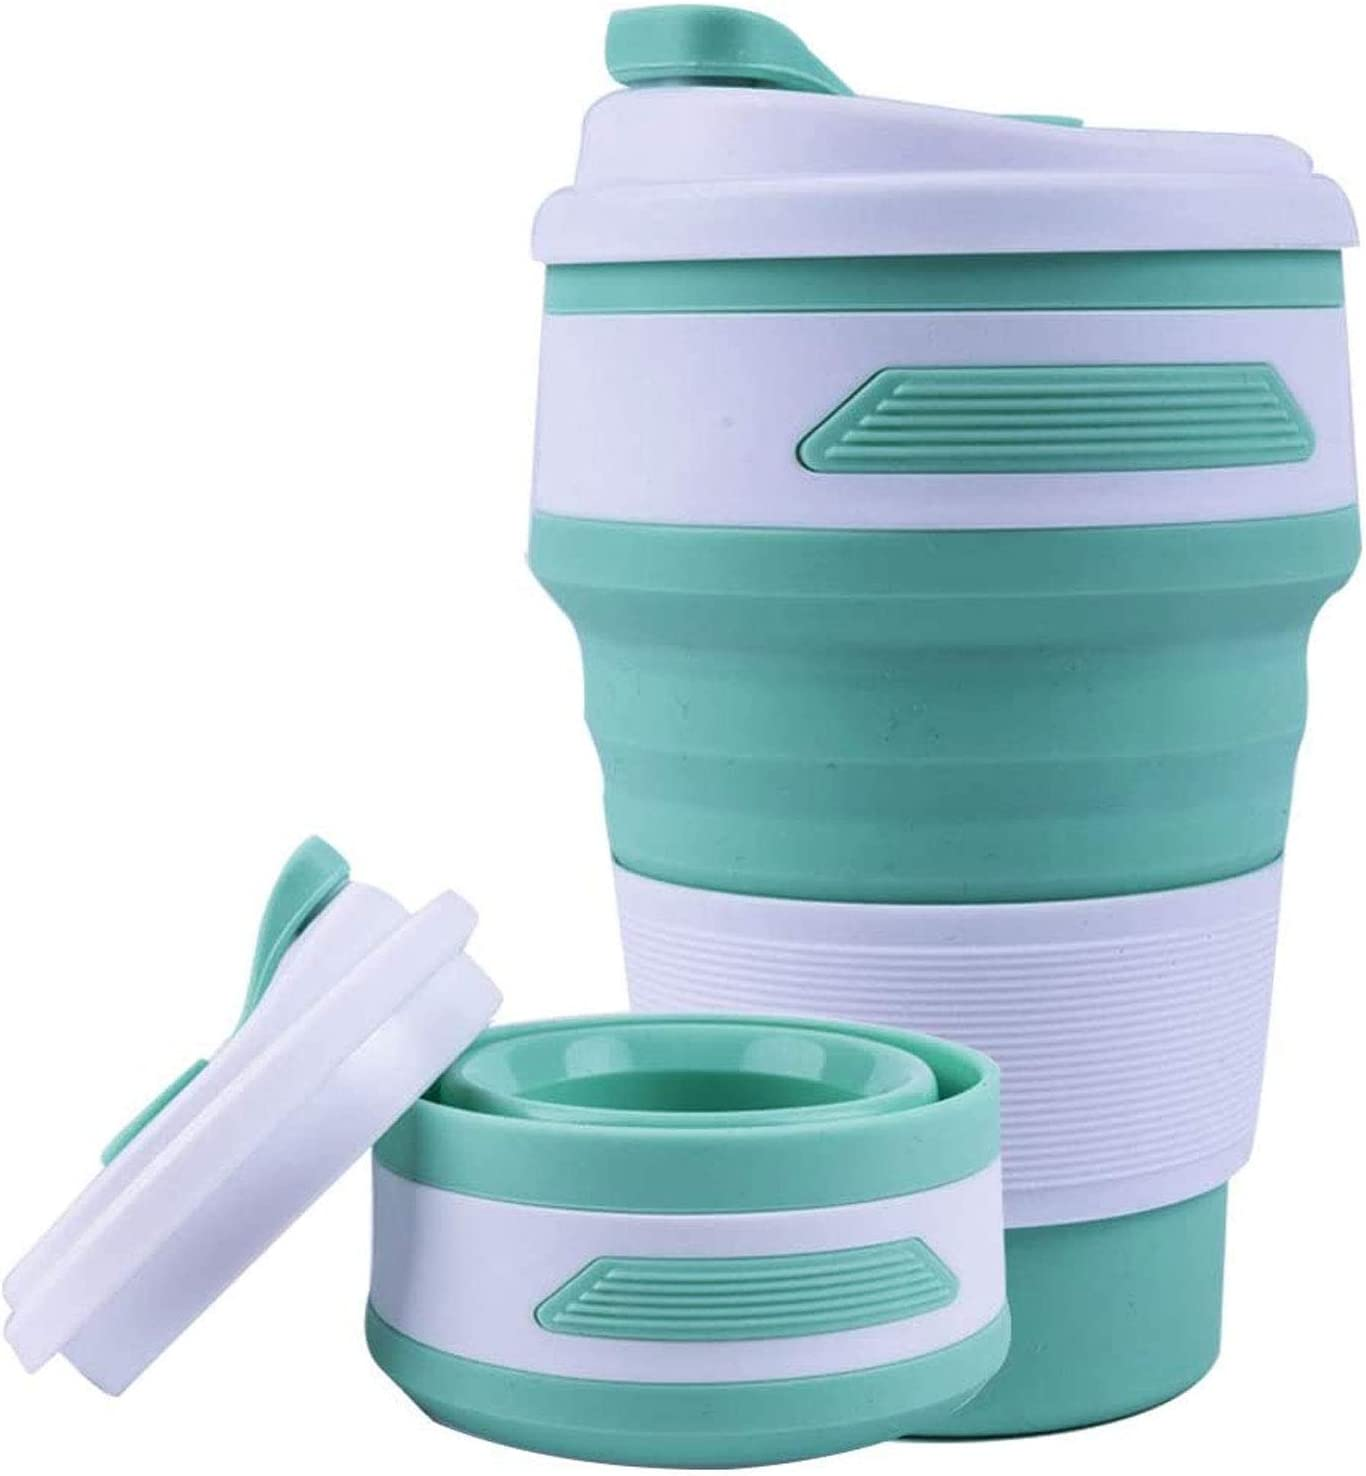 Portable Silicone Coffee Cup Collapsible Mug 12oz 350ml FDA